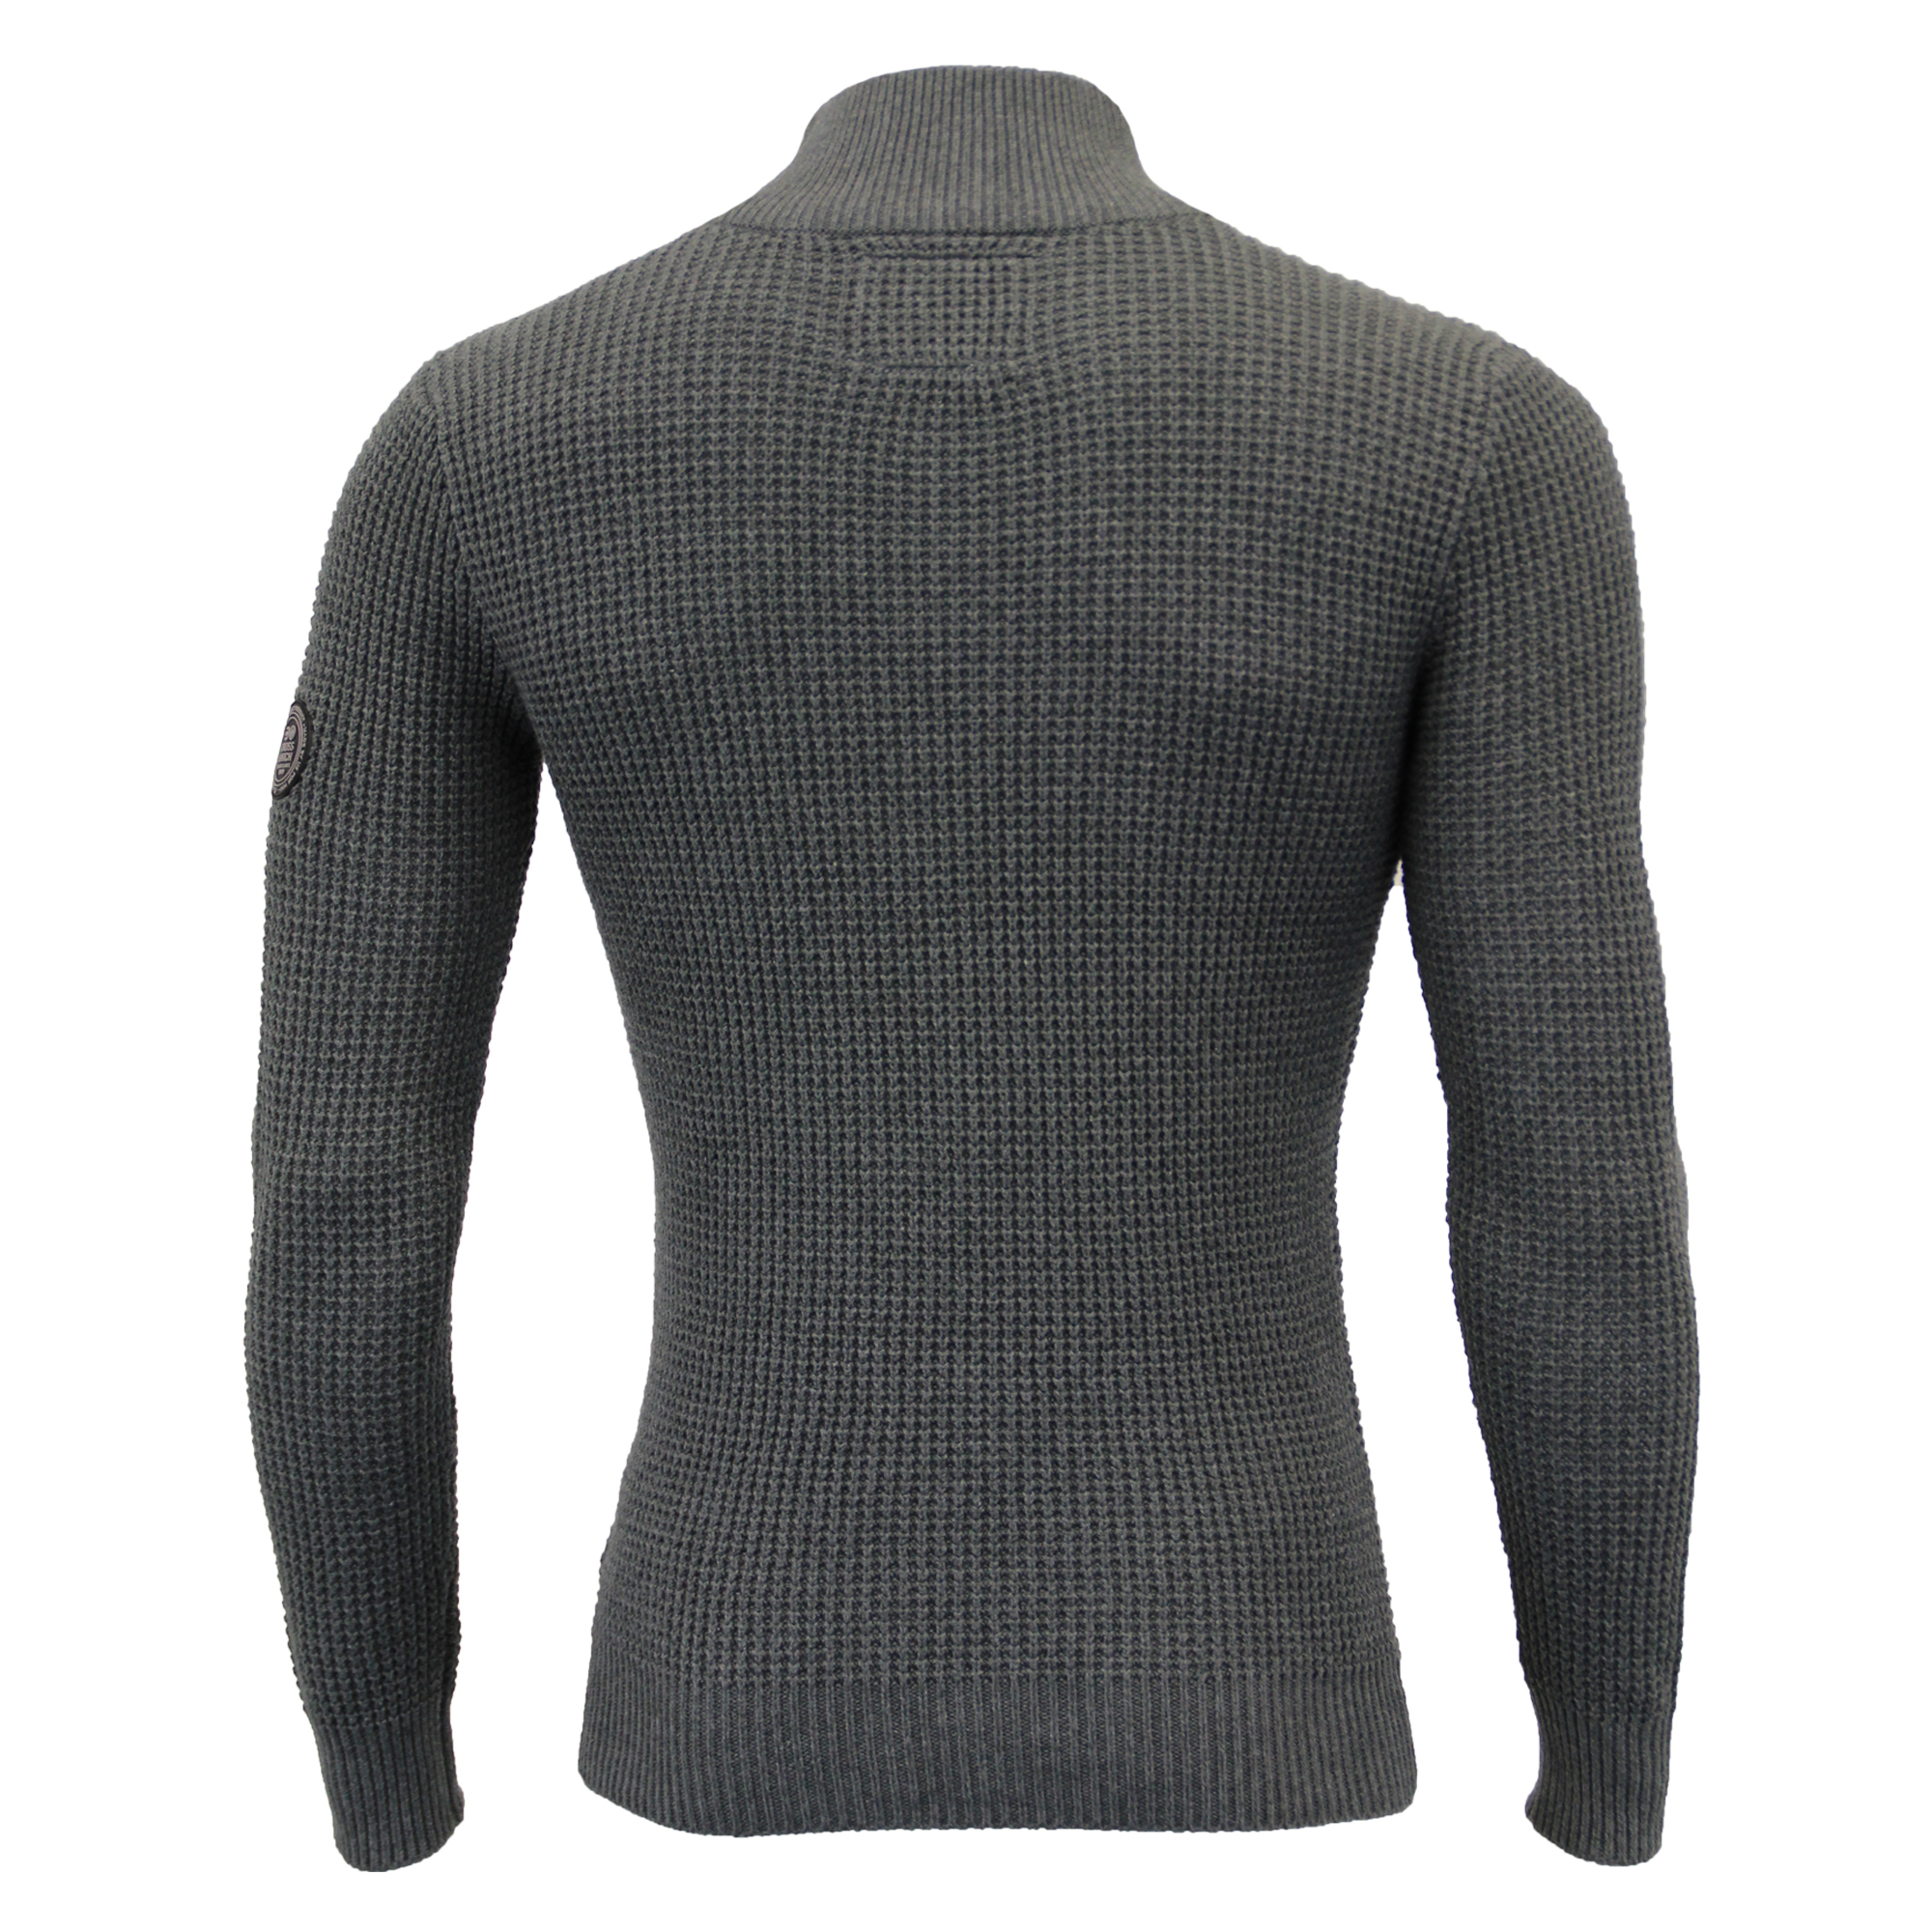 Mens-Knitted-Cotton-Crosshatch-Jumper-Sweater-Pullover-Waffle-Top-Zip-Winter-New thumbnail 8